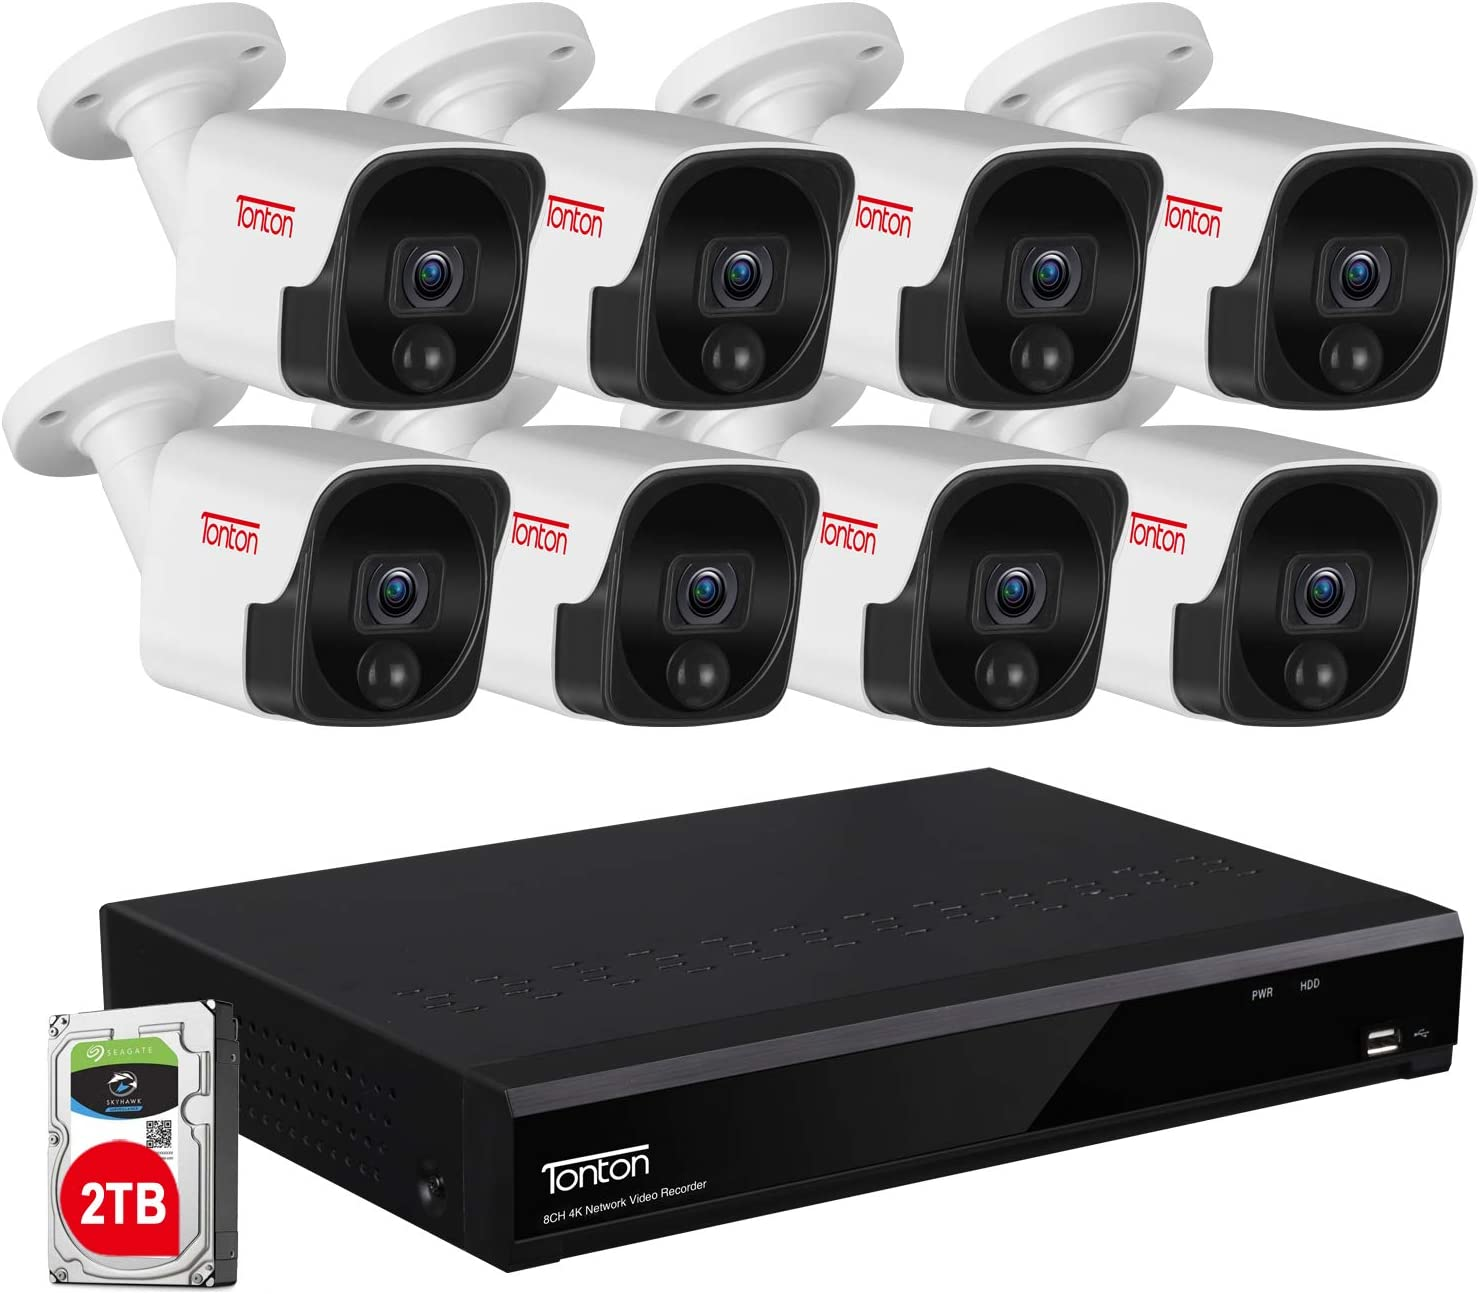 【4K Ultra HD NVR&Audio Recording】 Tonton 8MP Ultra HD PoE NVR Security System,8CH Video NVR with 2TB HDD and 8PCS 5MP Outdoor Waterproof Bullet IP Cameras,Heat&Motion Sensing,True Plug and Play(Gray)